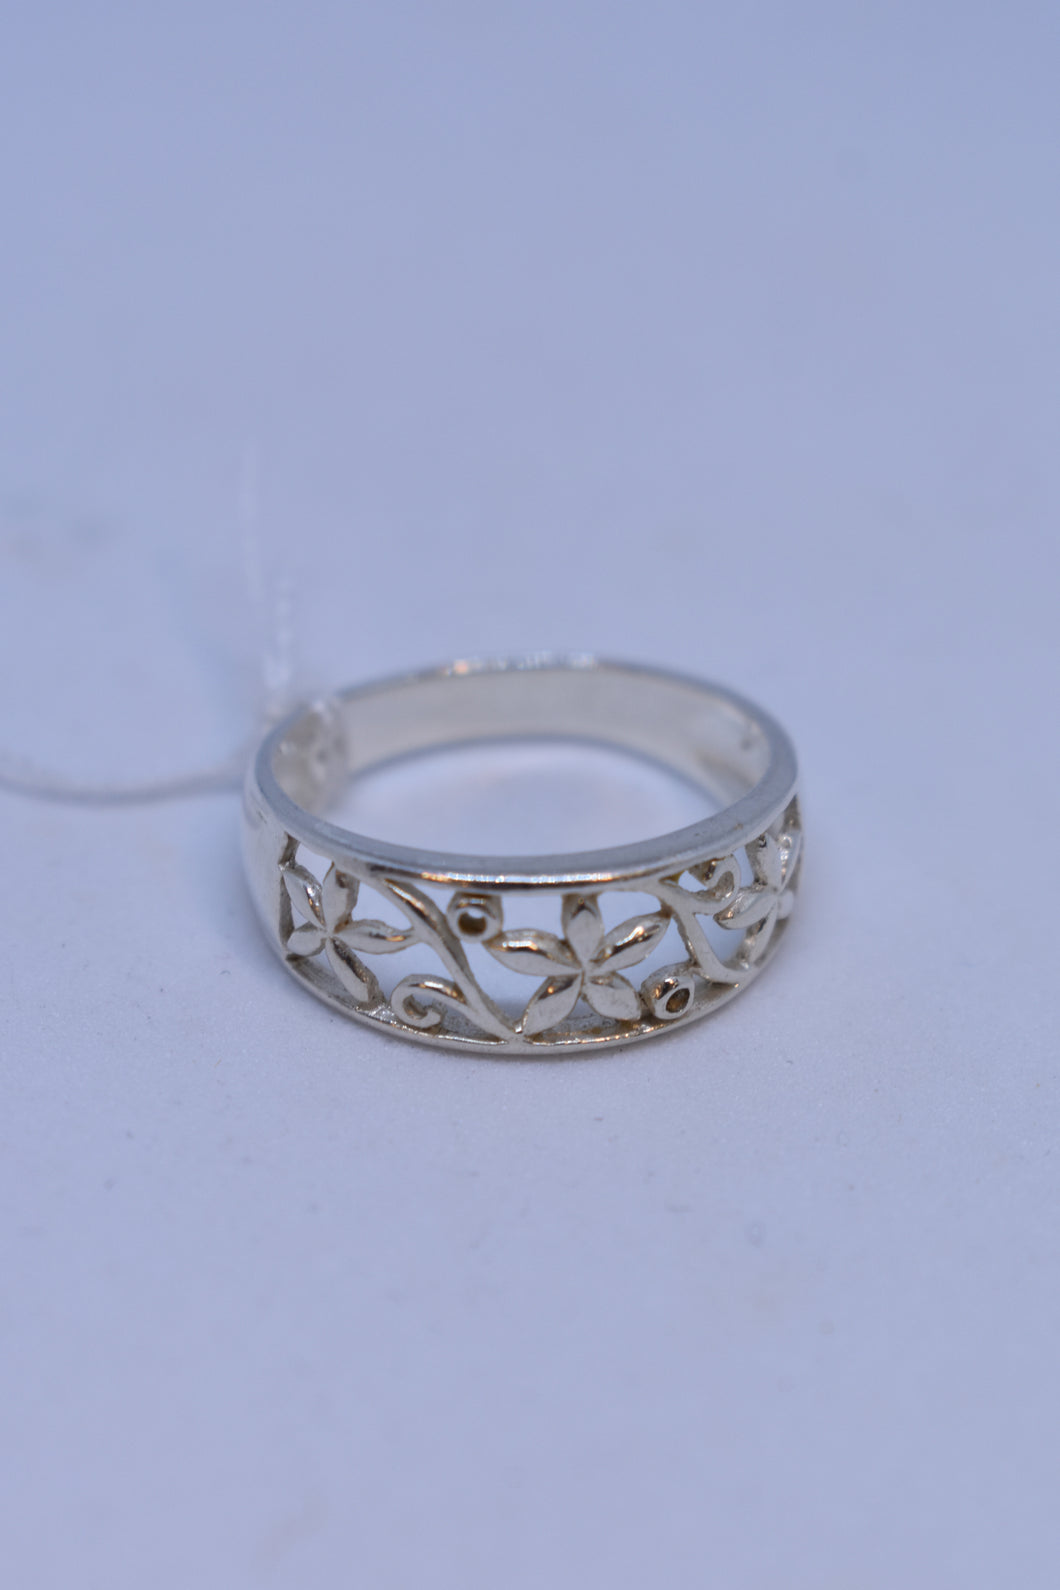 925 Silver ring with floral cutout